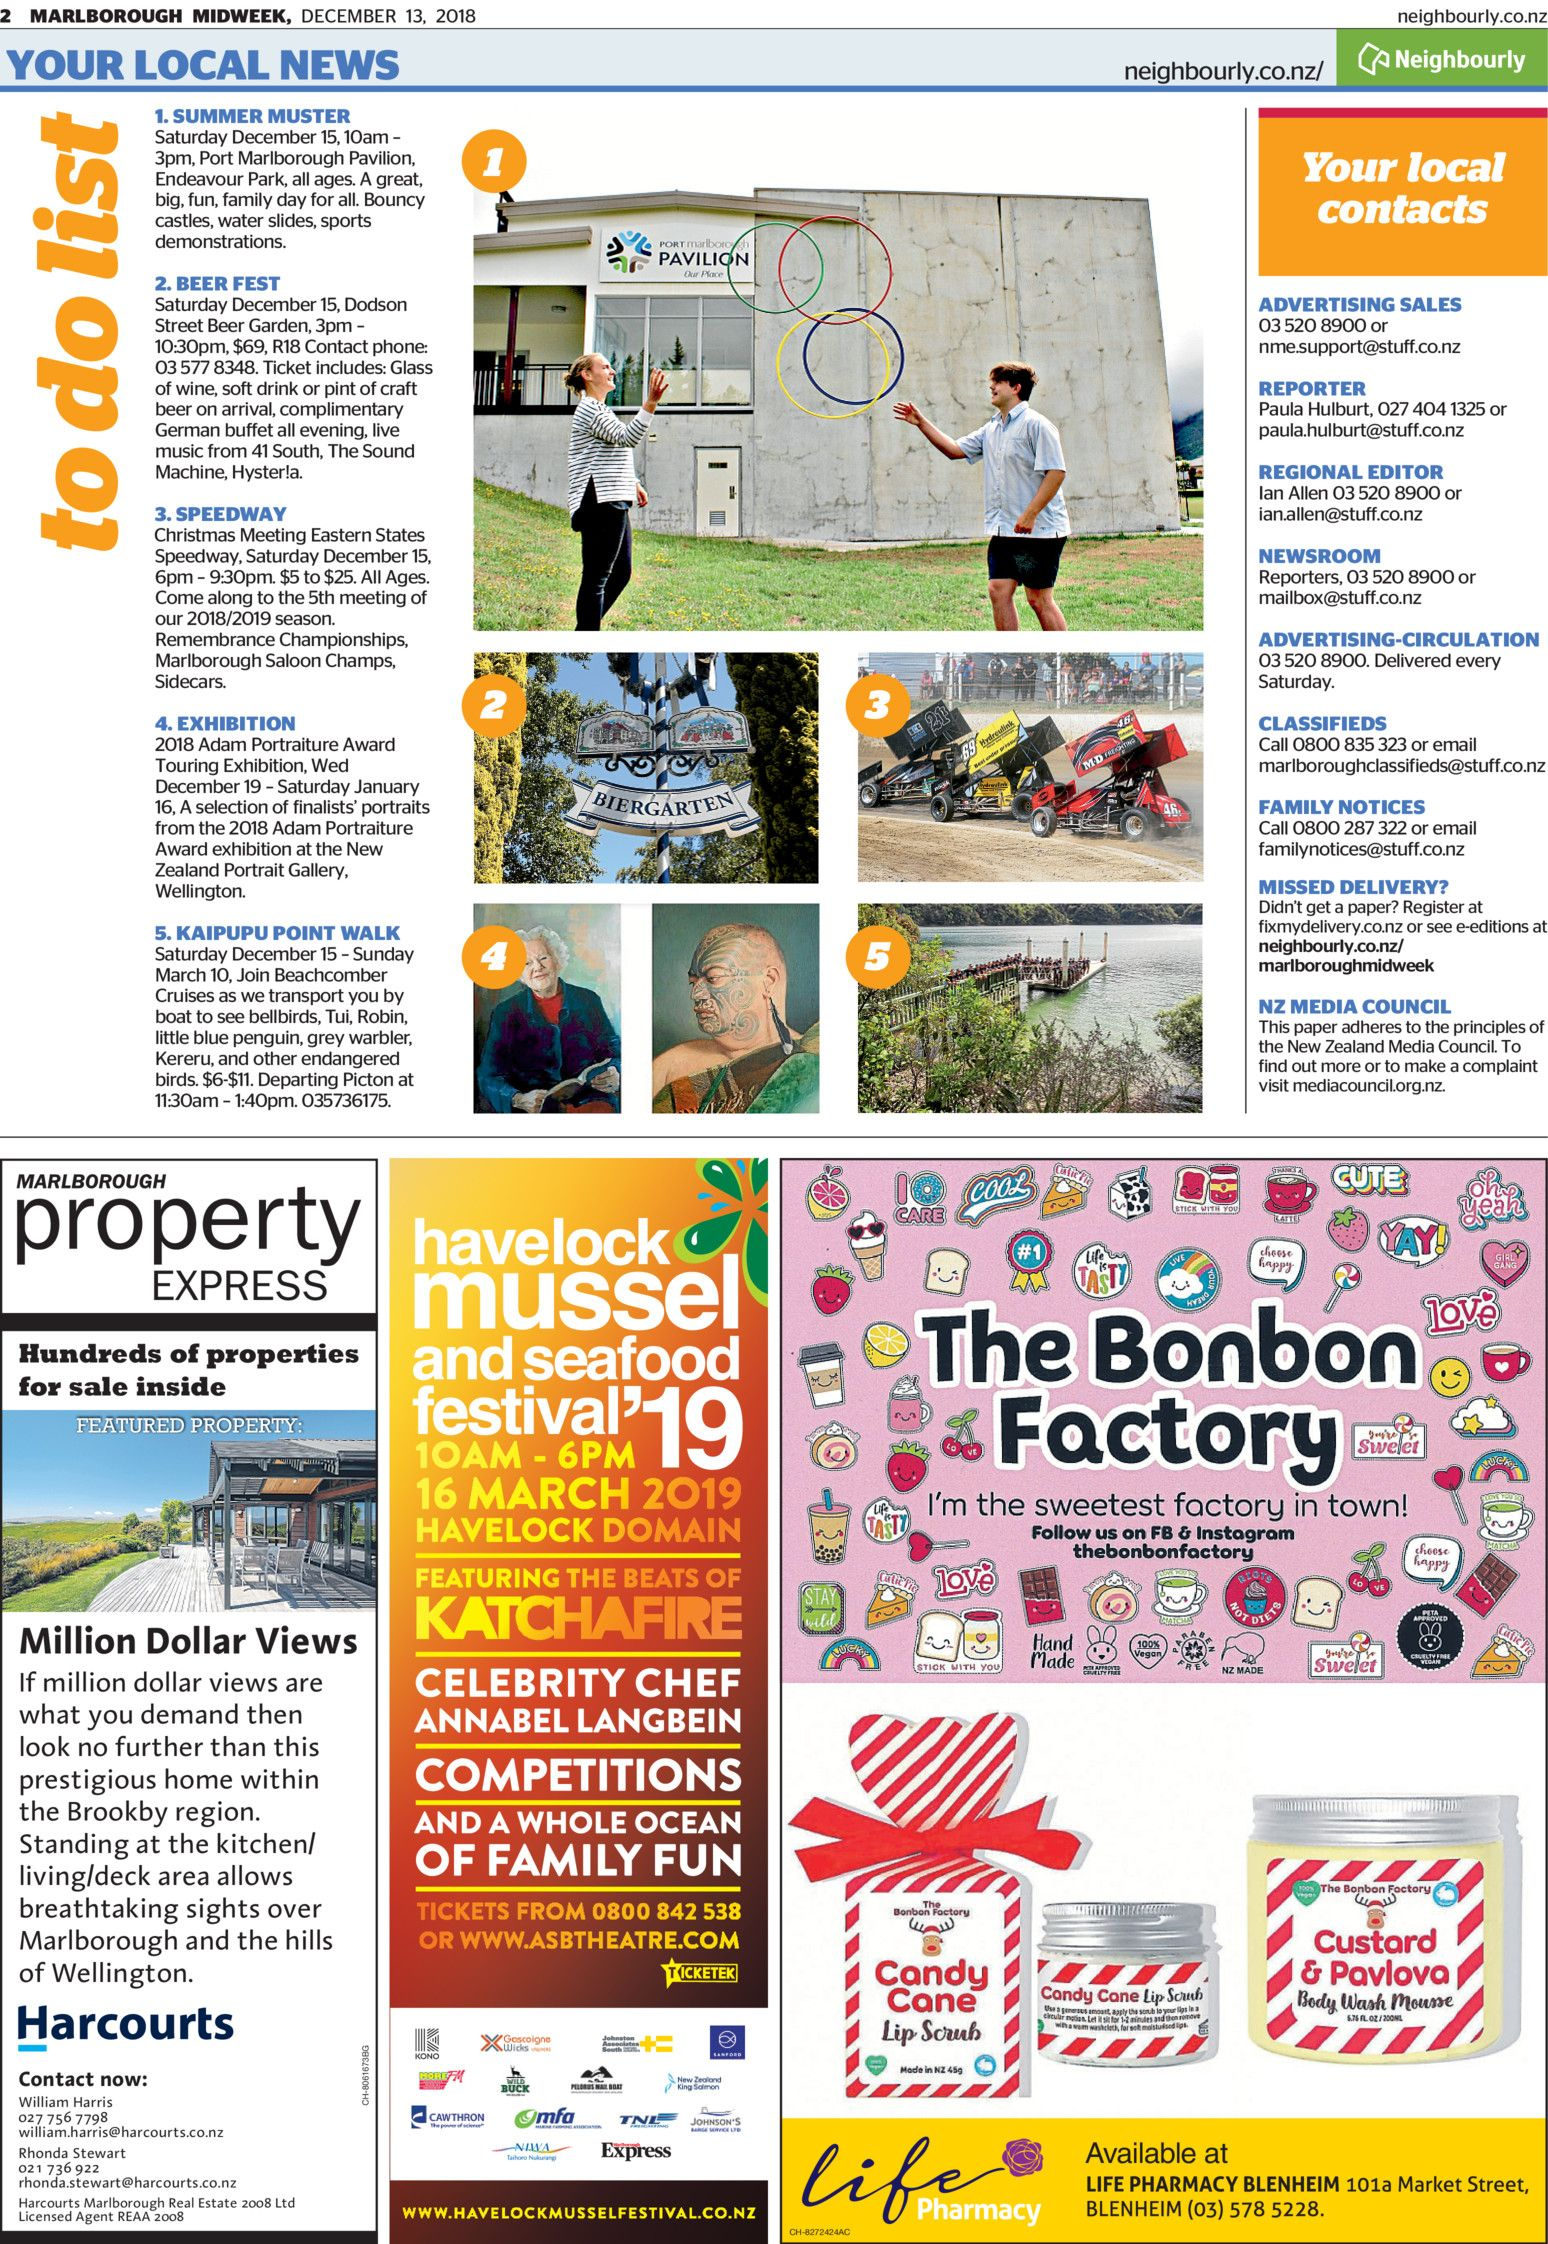 Marlborough Midweek Read online on Neighbourly